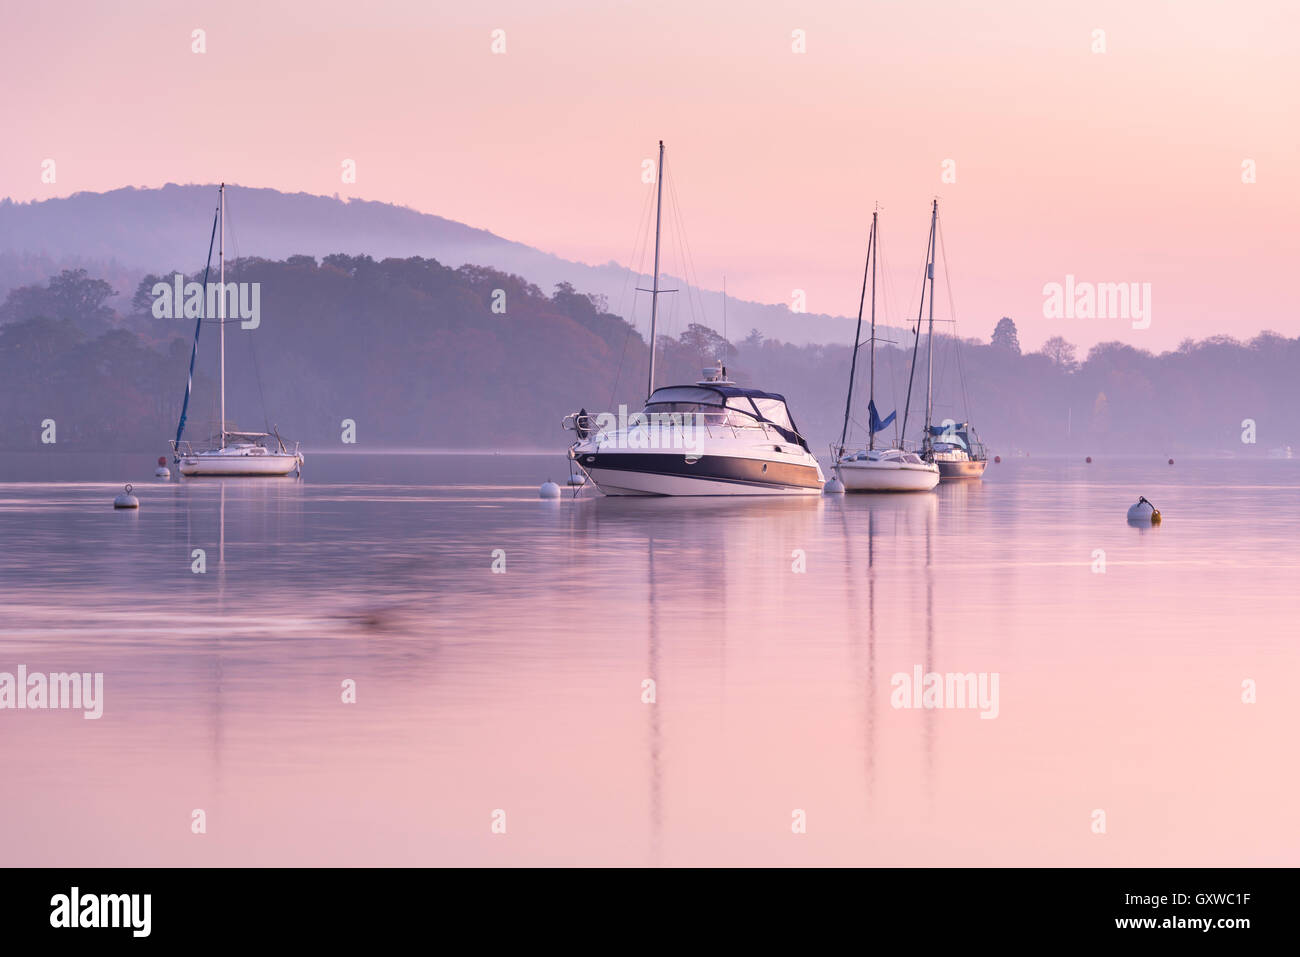 Boats moored on Lake Windermere at sunset, Bowness, Lake District, Cumbria, England. Autumn (November) 2015. - Stock Image